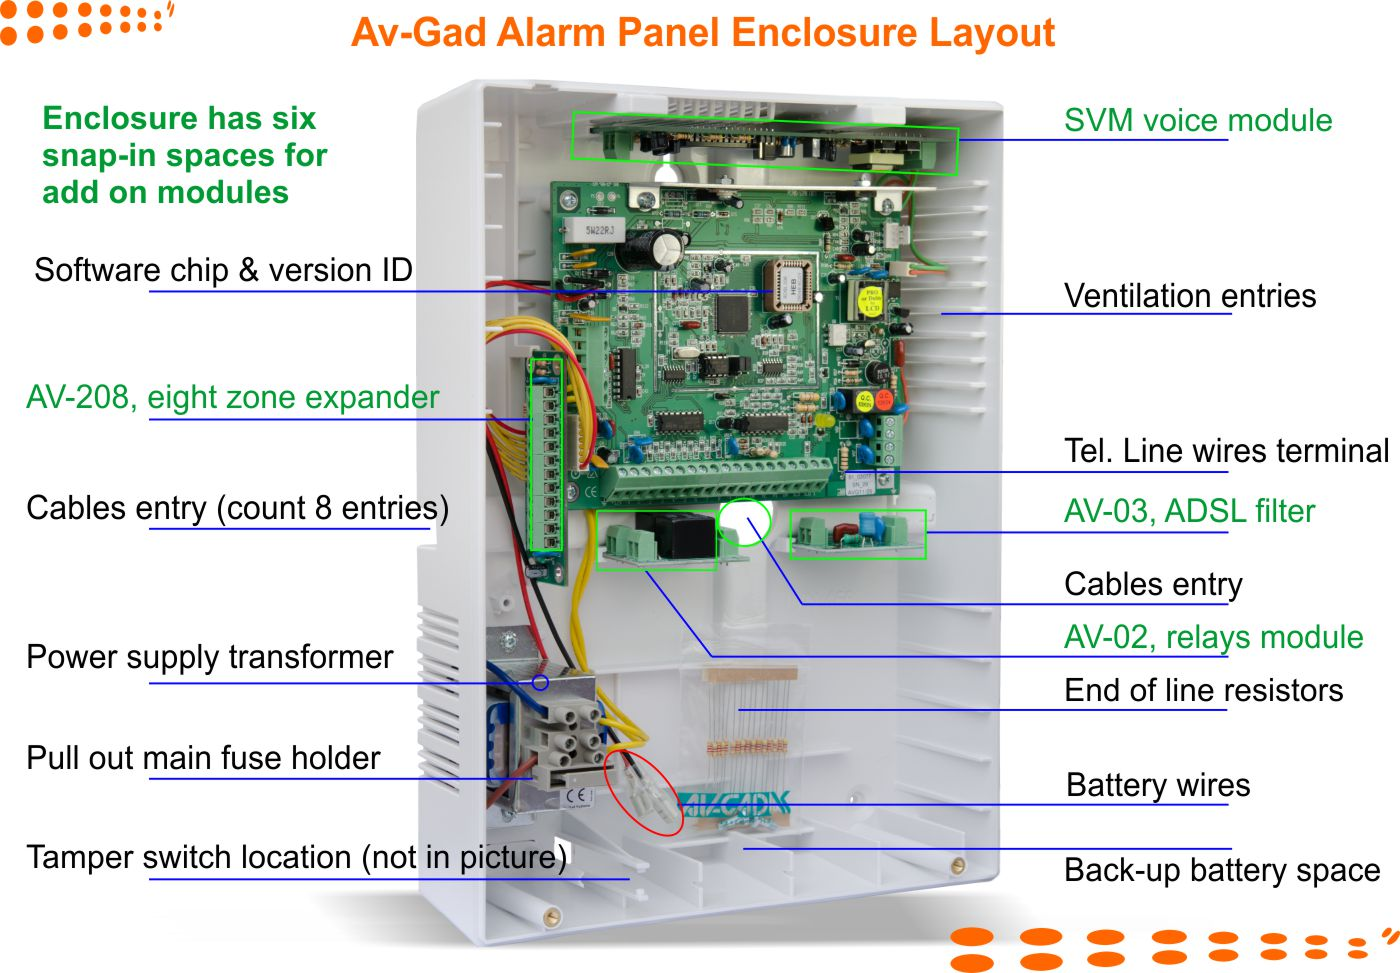 Alarm Box For Av Gad Panels Security Products Wireless Dsl Wiring Diagram System Systems Intrusion Detection Devices